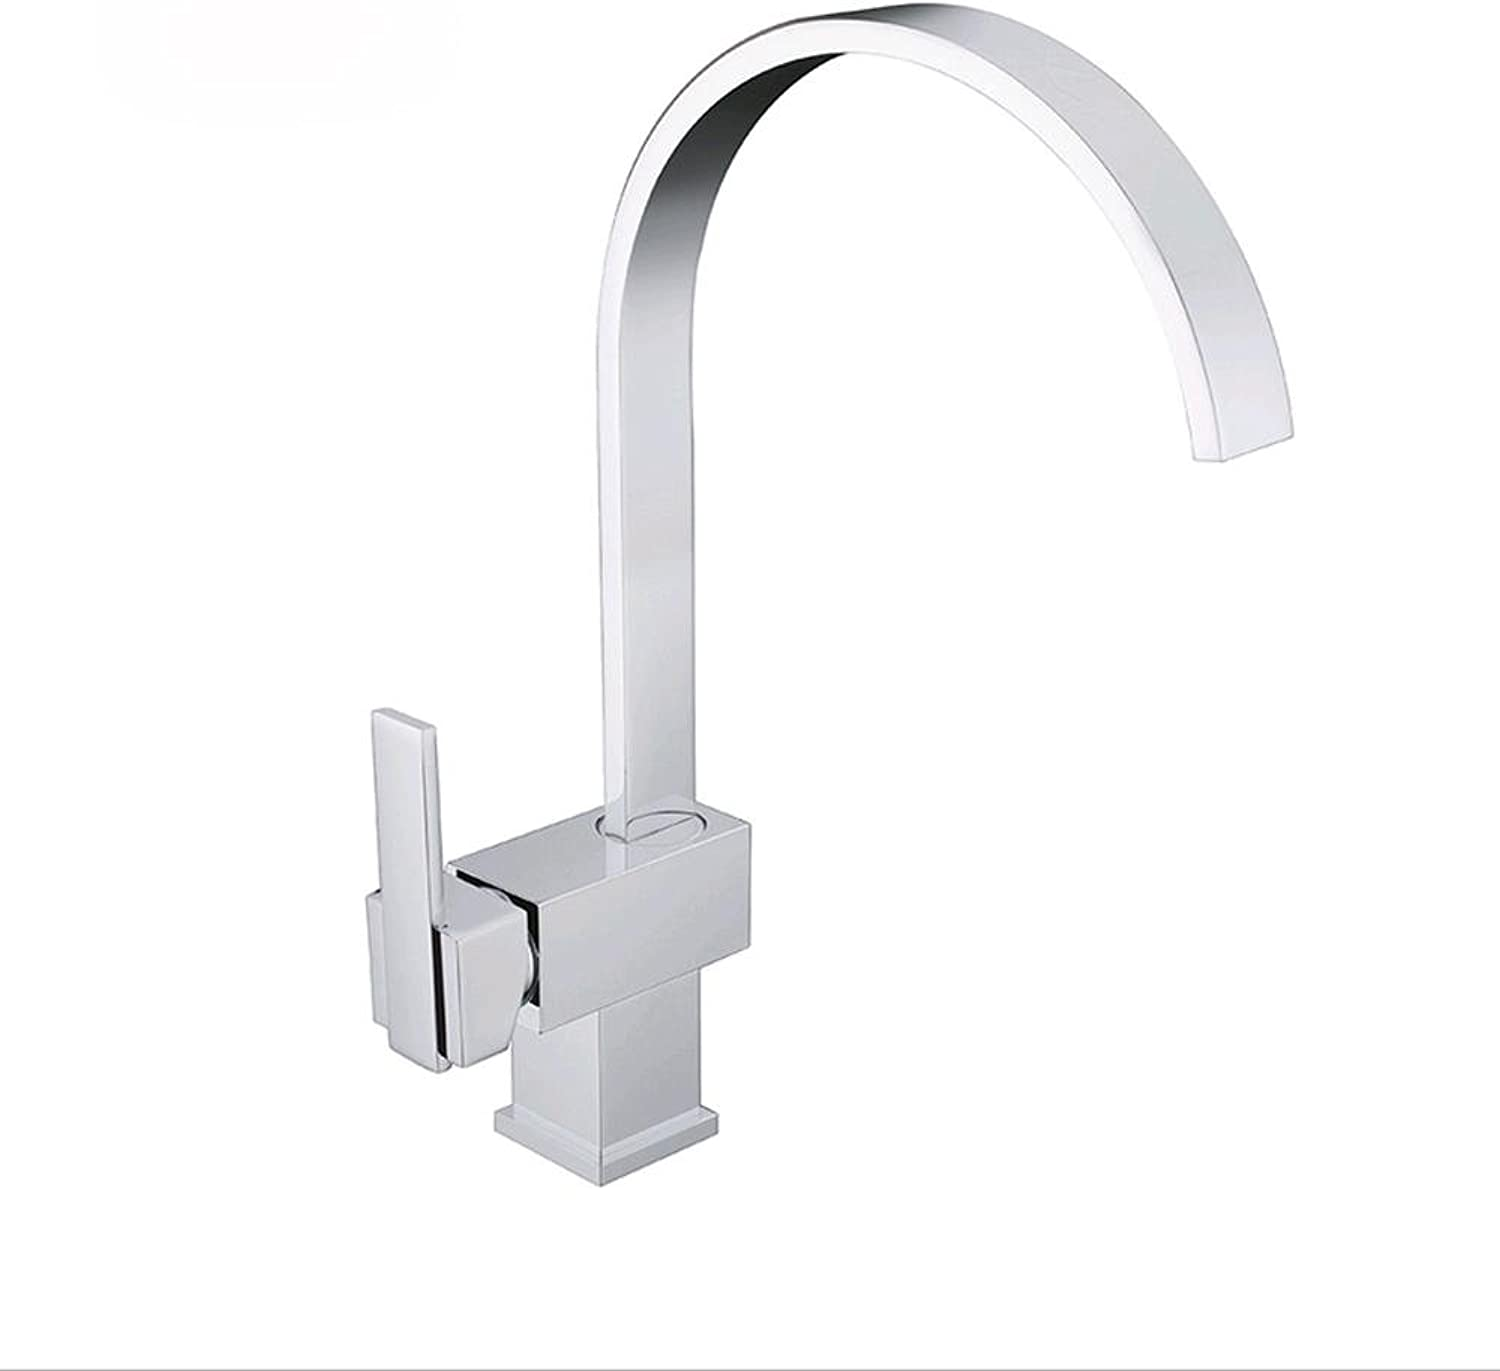 BingHaiY Full copper mixer faucet hot and cold dishes basin faucet faucet hot and cold water faucet